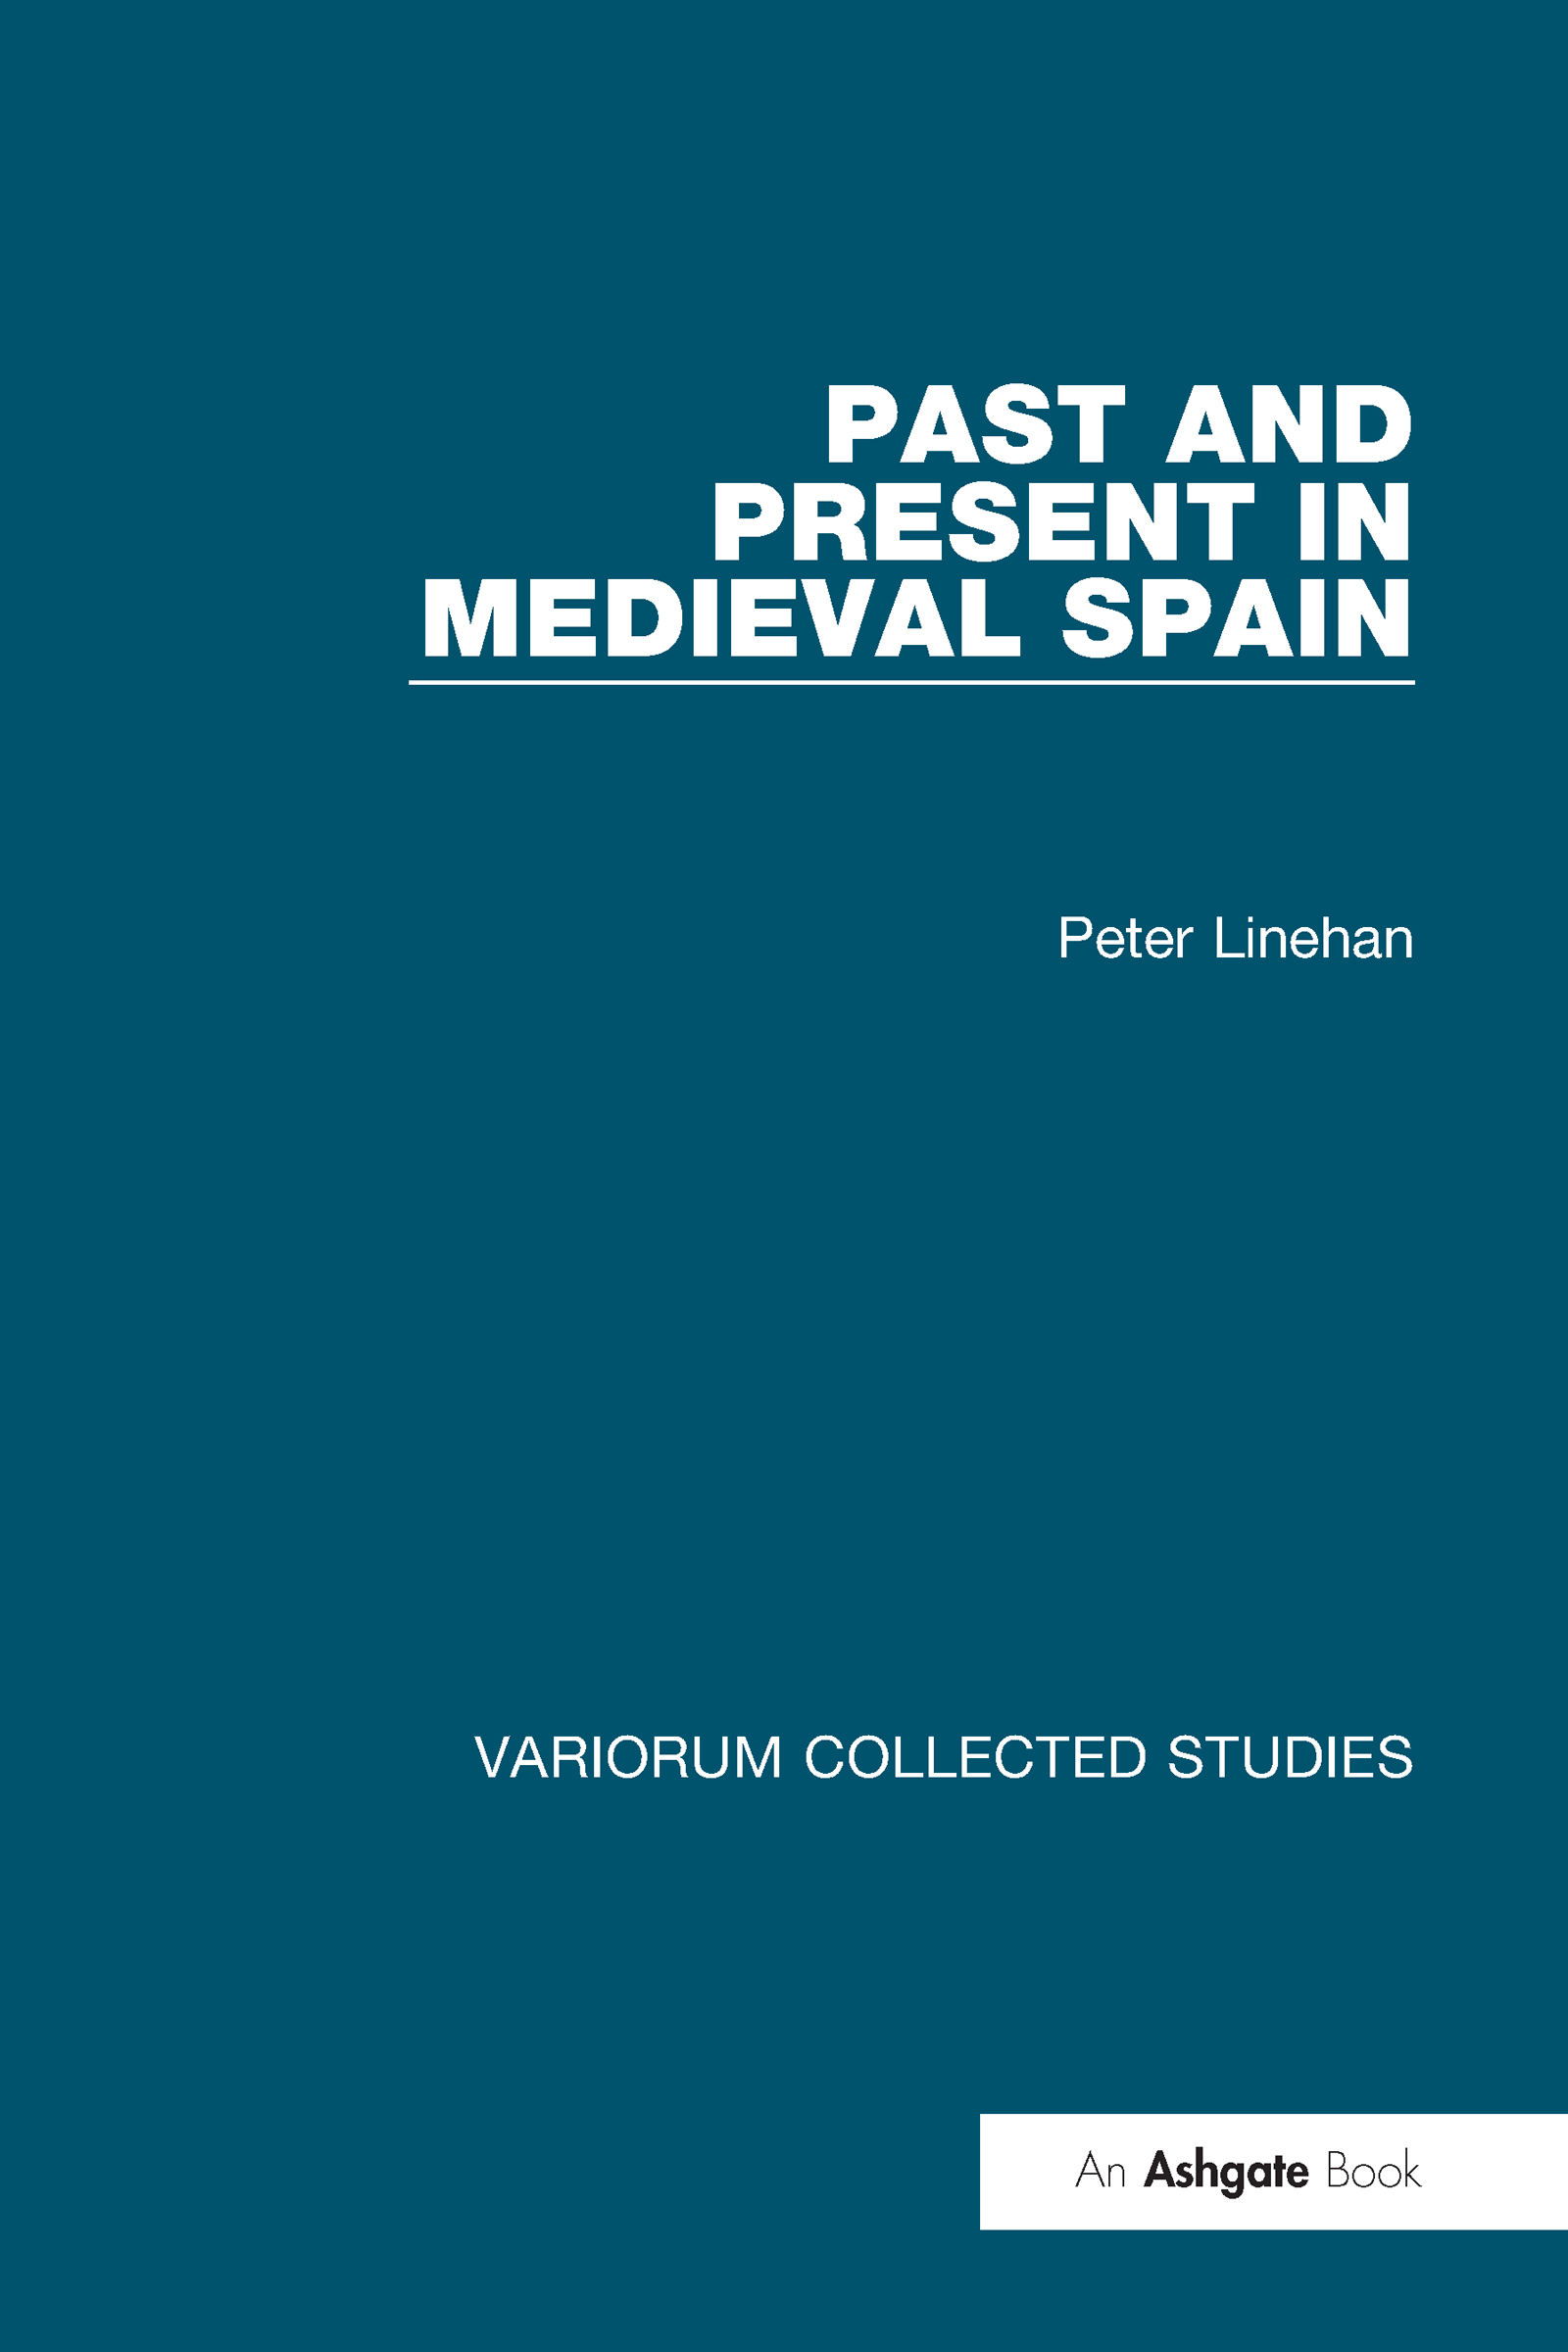 Past and Present in Medieval Spain